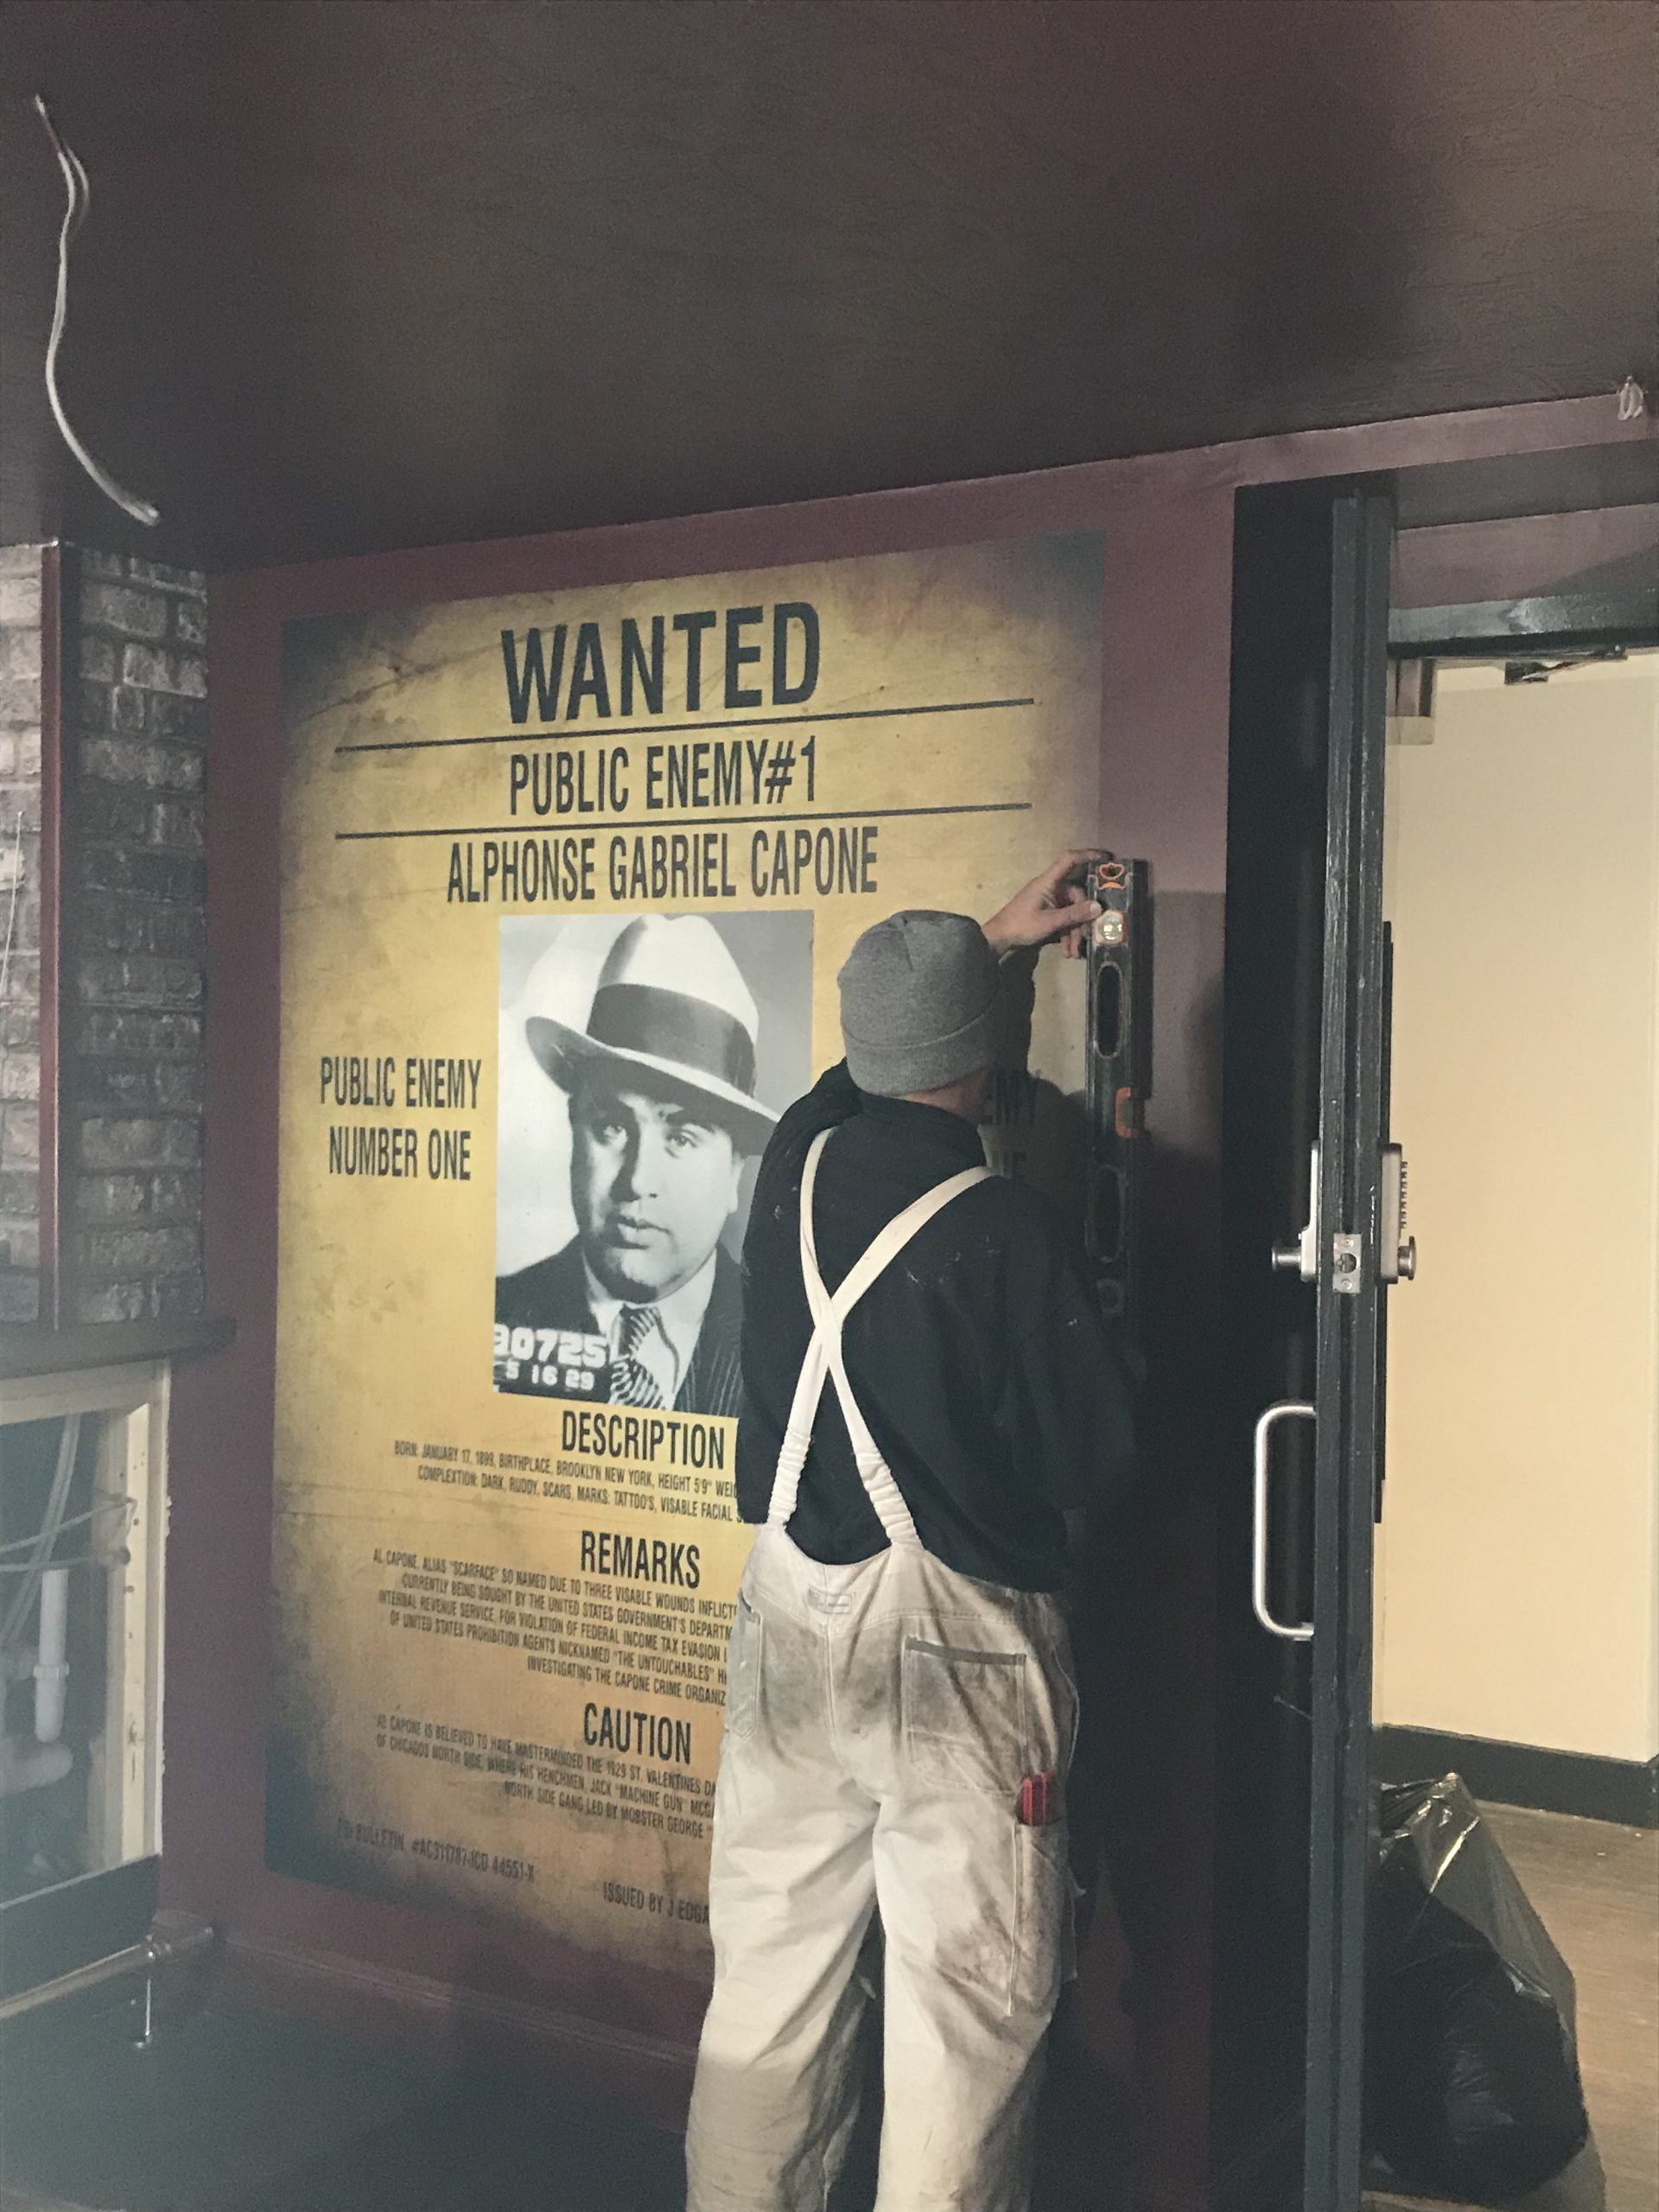 Public enemy wanted poster on the wall